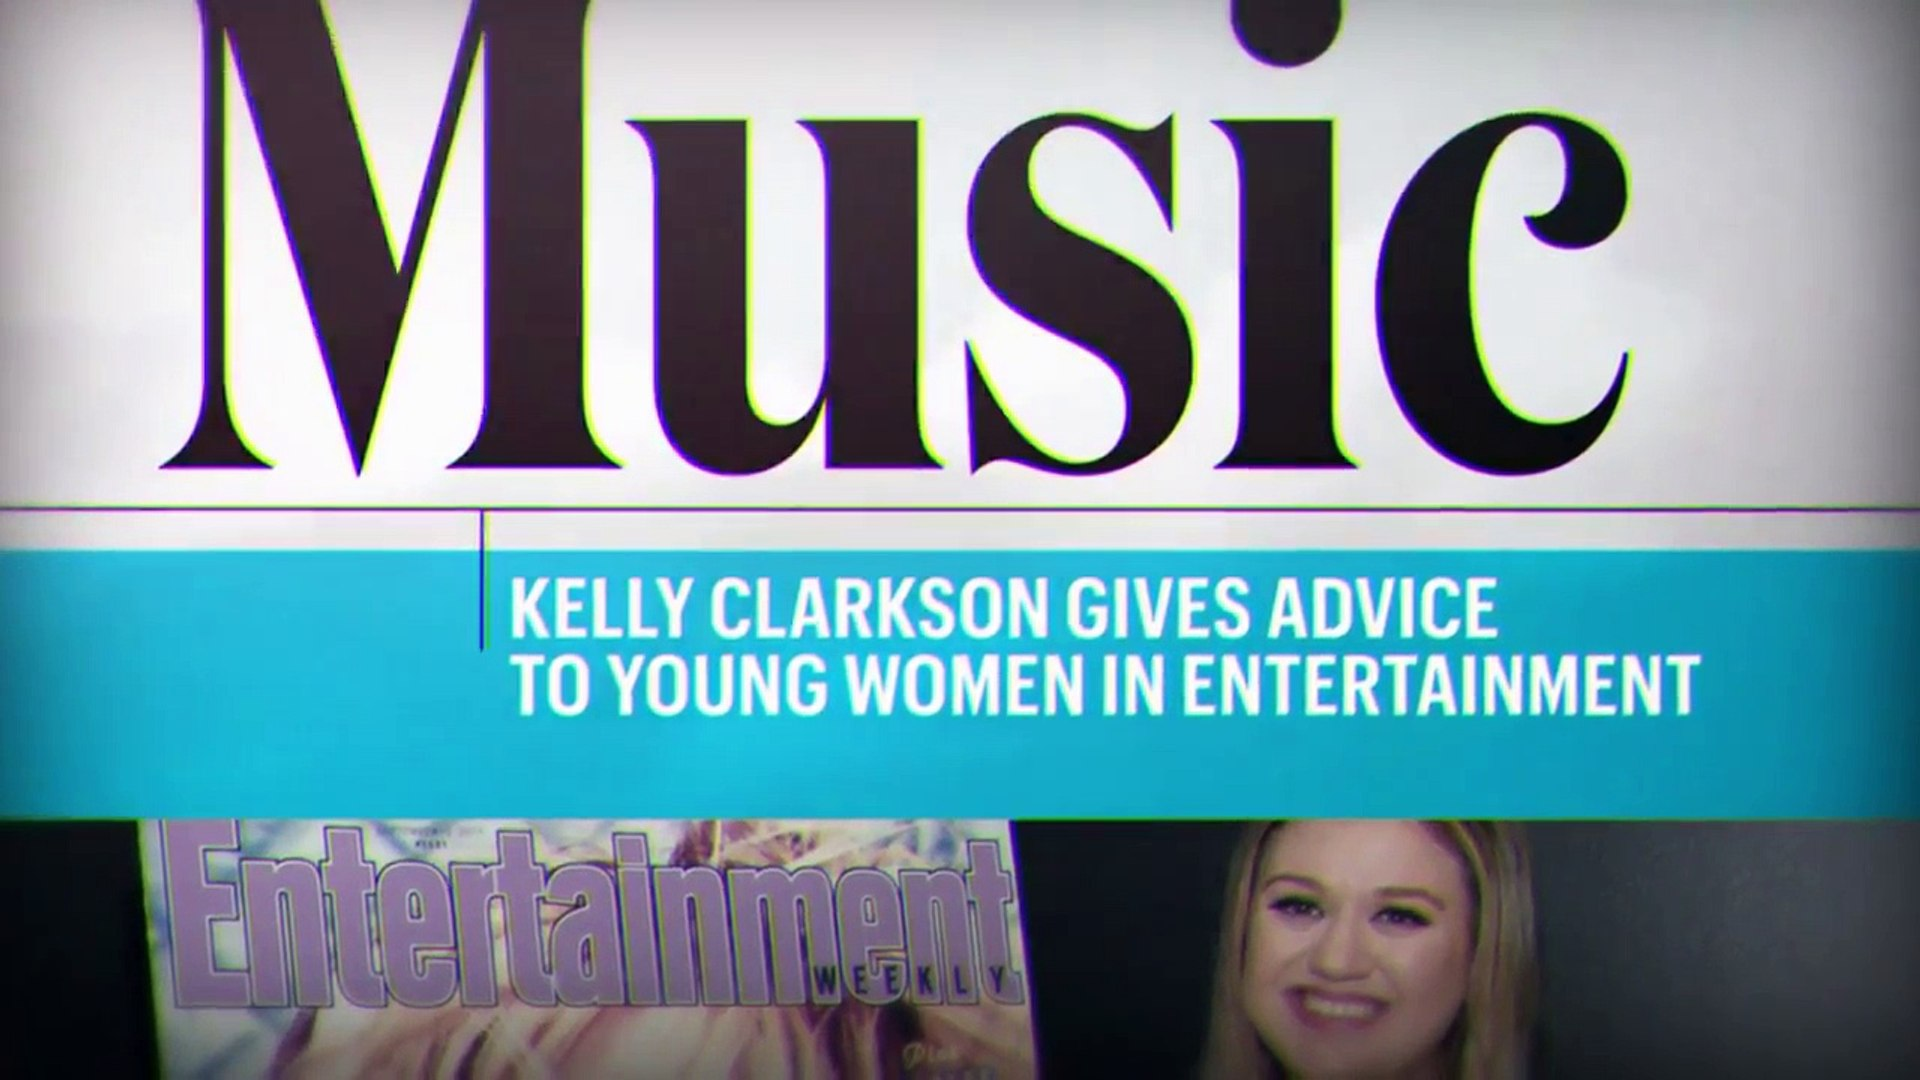 Kelly Clarkson On Harvey Weinstein & Advice For Young Women In Entertainment | Entertainment Wee